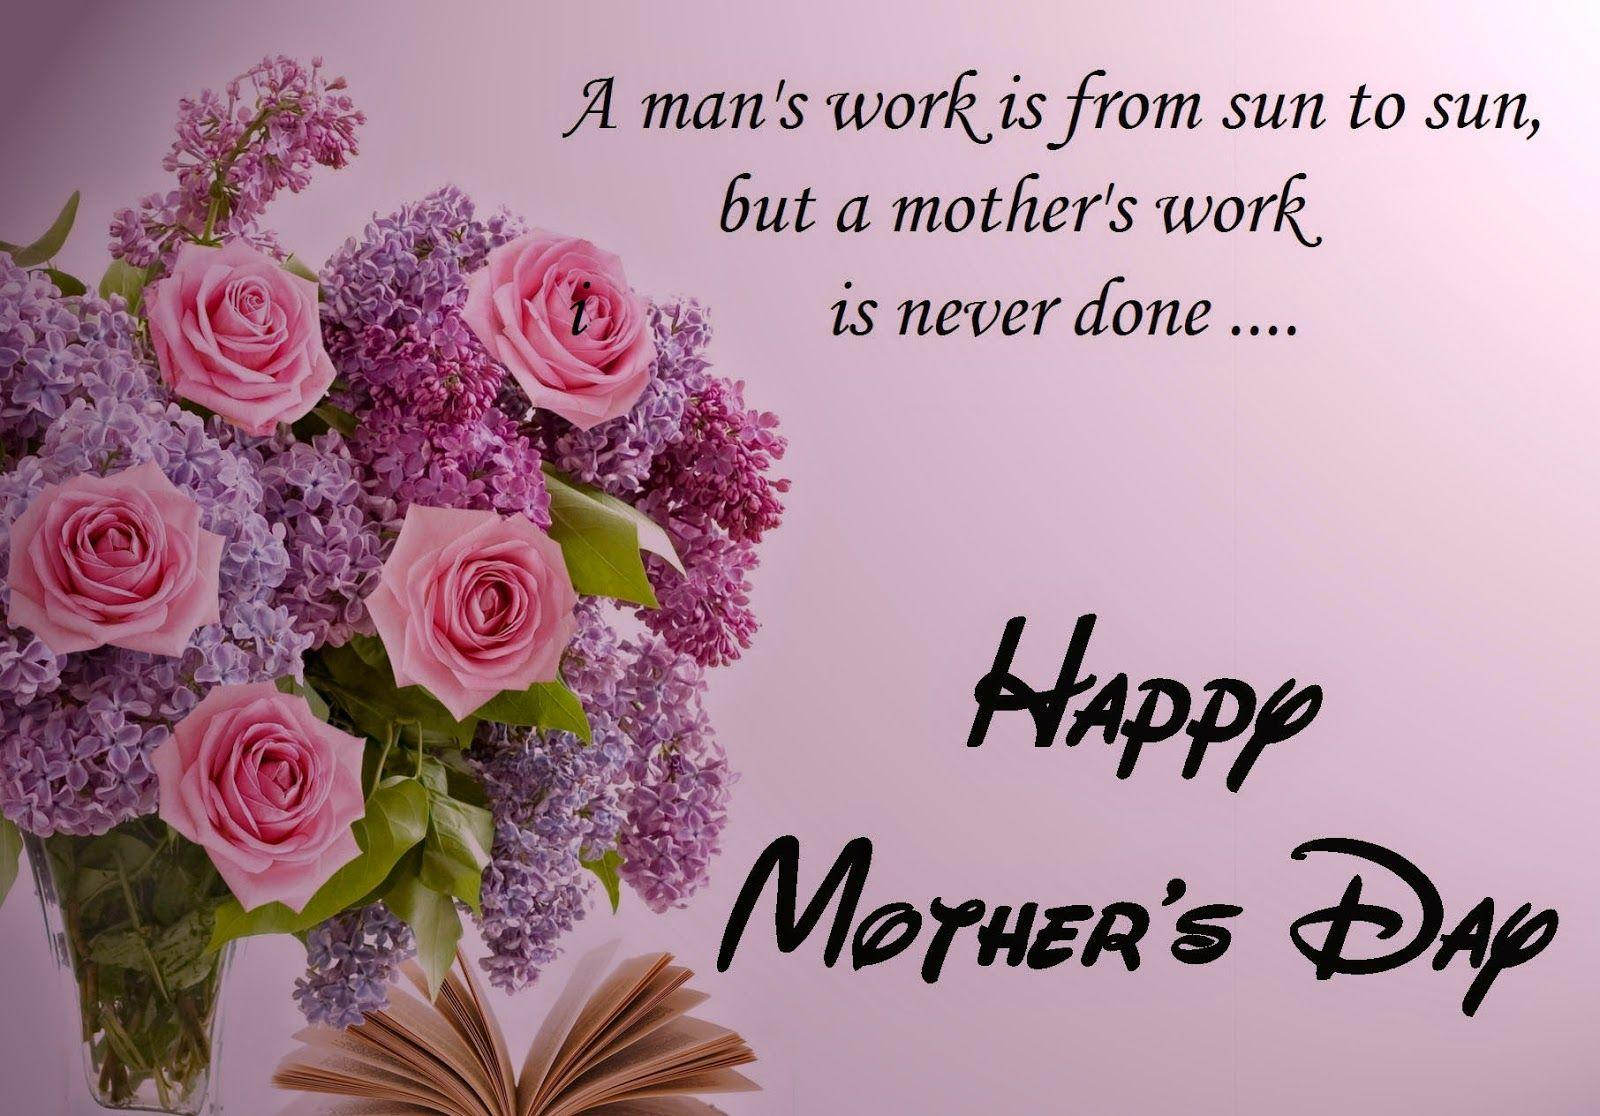 Mother's Day cards - Google Search | Everyday Magic | Pinterest ...